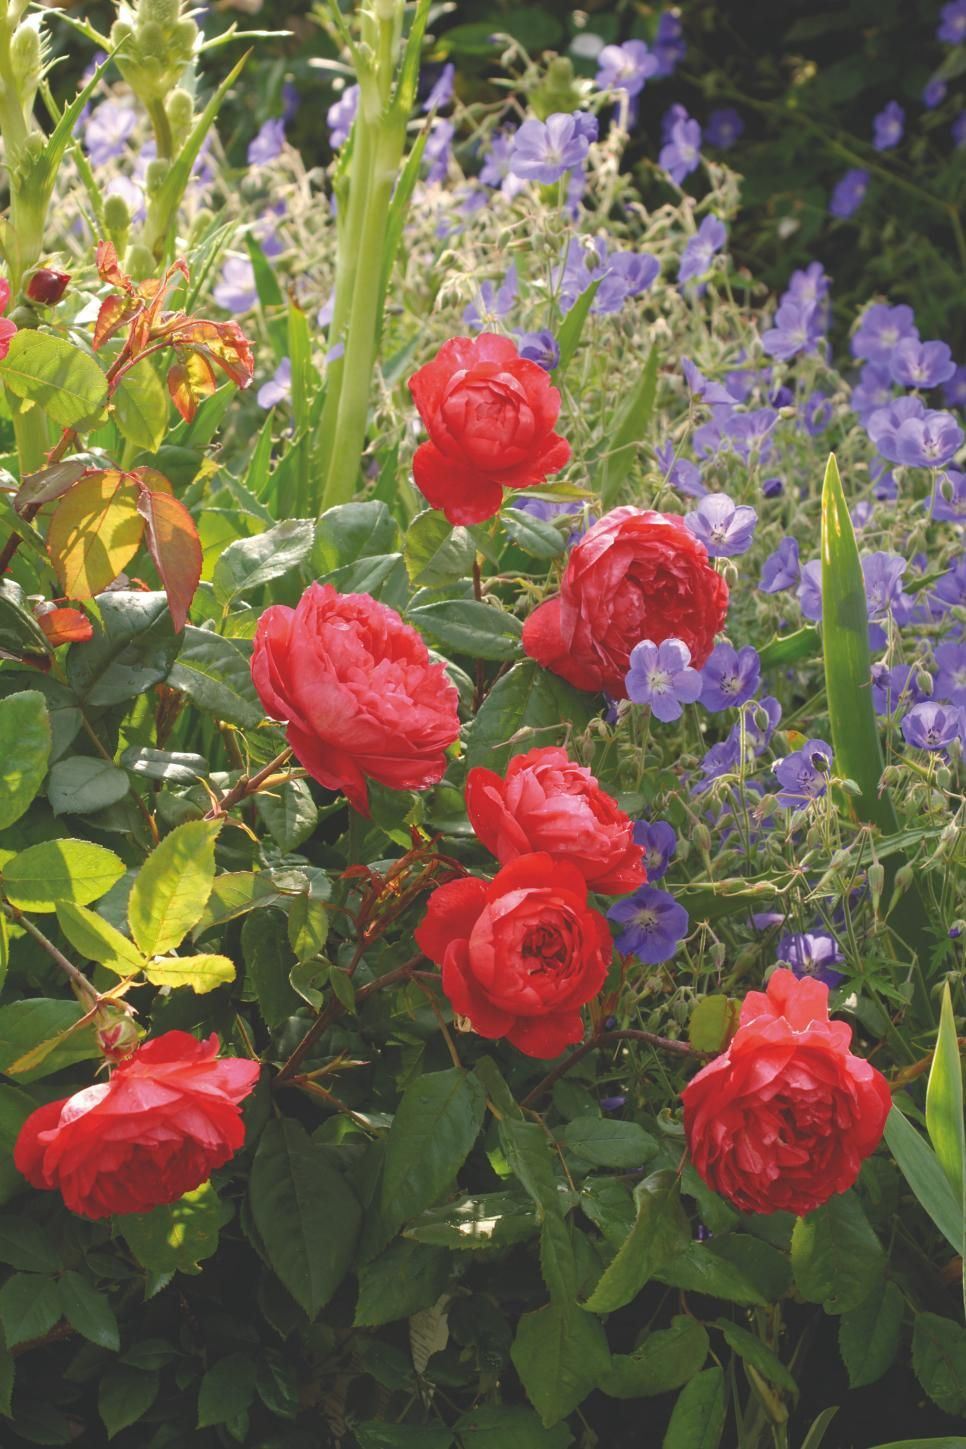 The most popular english roses in america david austin english british rose breeder david austin creates some of the most beautiful flowers in the world find out which roses are most in demand in american gardens izmirmasajfo